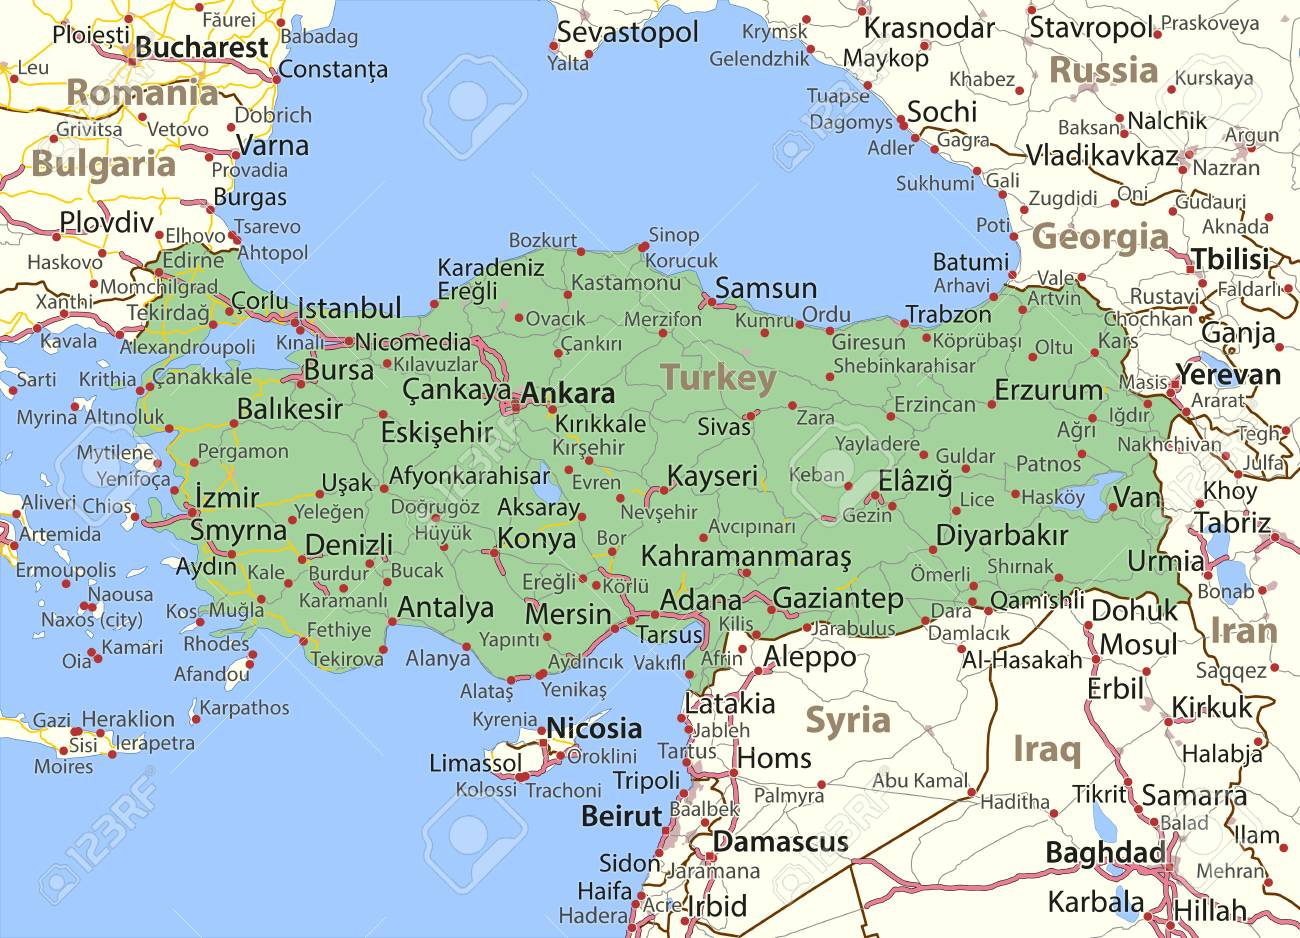 Map of Turkey. Shows country borders, urban areas, place names.. Map In Turkey on uzbekistan in map, cook islands in map, south sudan in map, easter islands in map, jordan in map, bahrain in map, troy in map, mauritania in map, togo in map, czech republic in map, cappadocia in map, antioch in map, andorra in map, luxembourg in map, turkmenistan in map, brunei in map, saudi arabia in map, saint lucia in map, djibouti in map, fertile crescent in map,